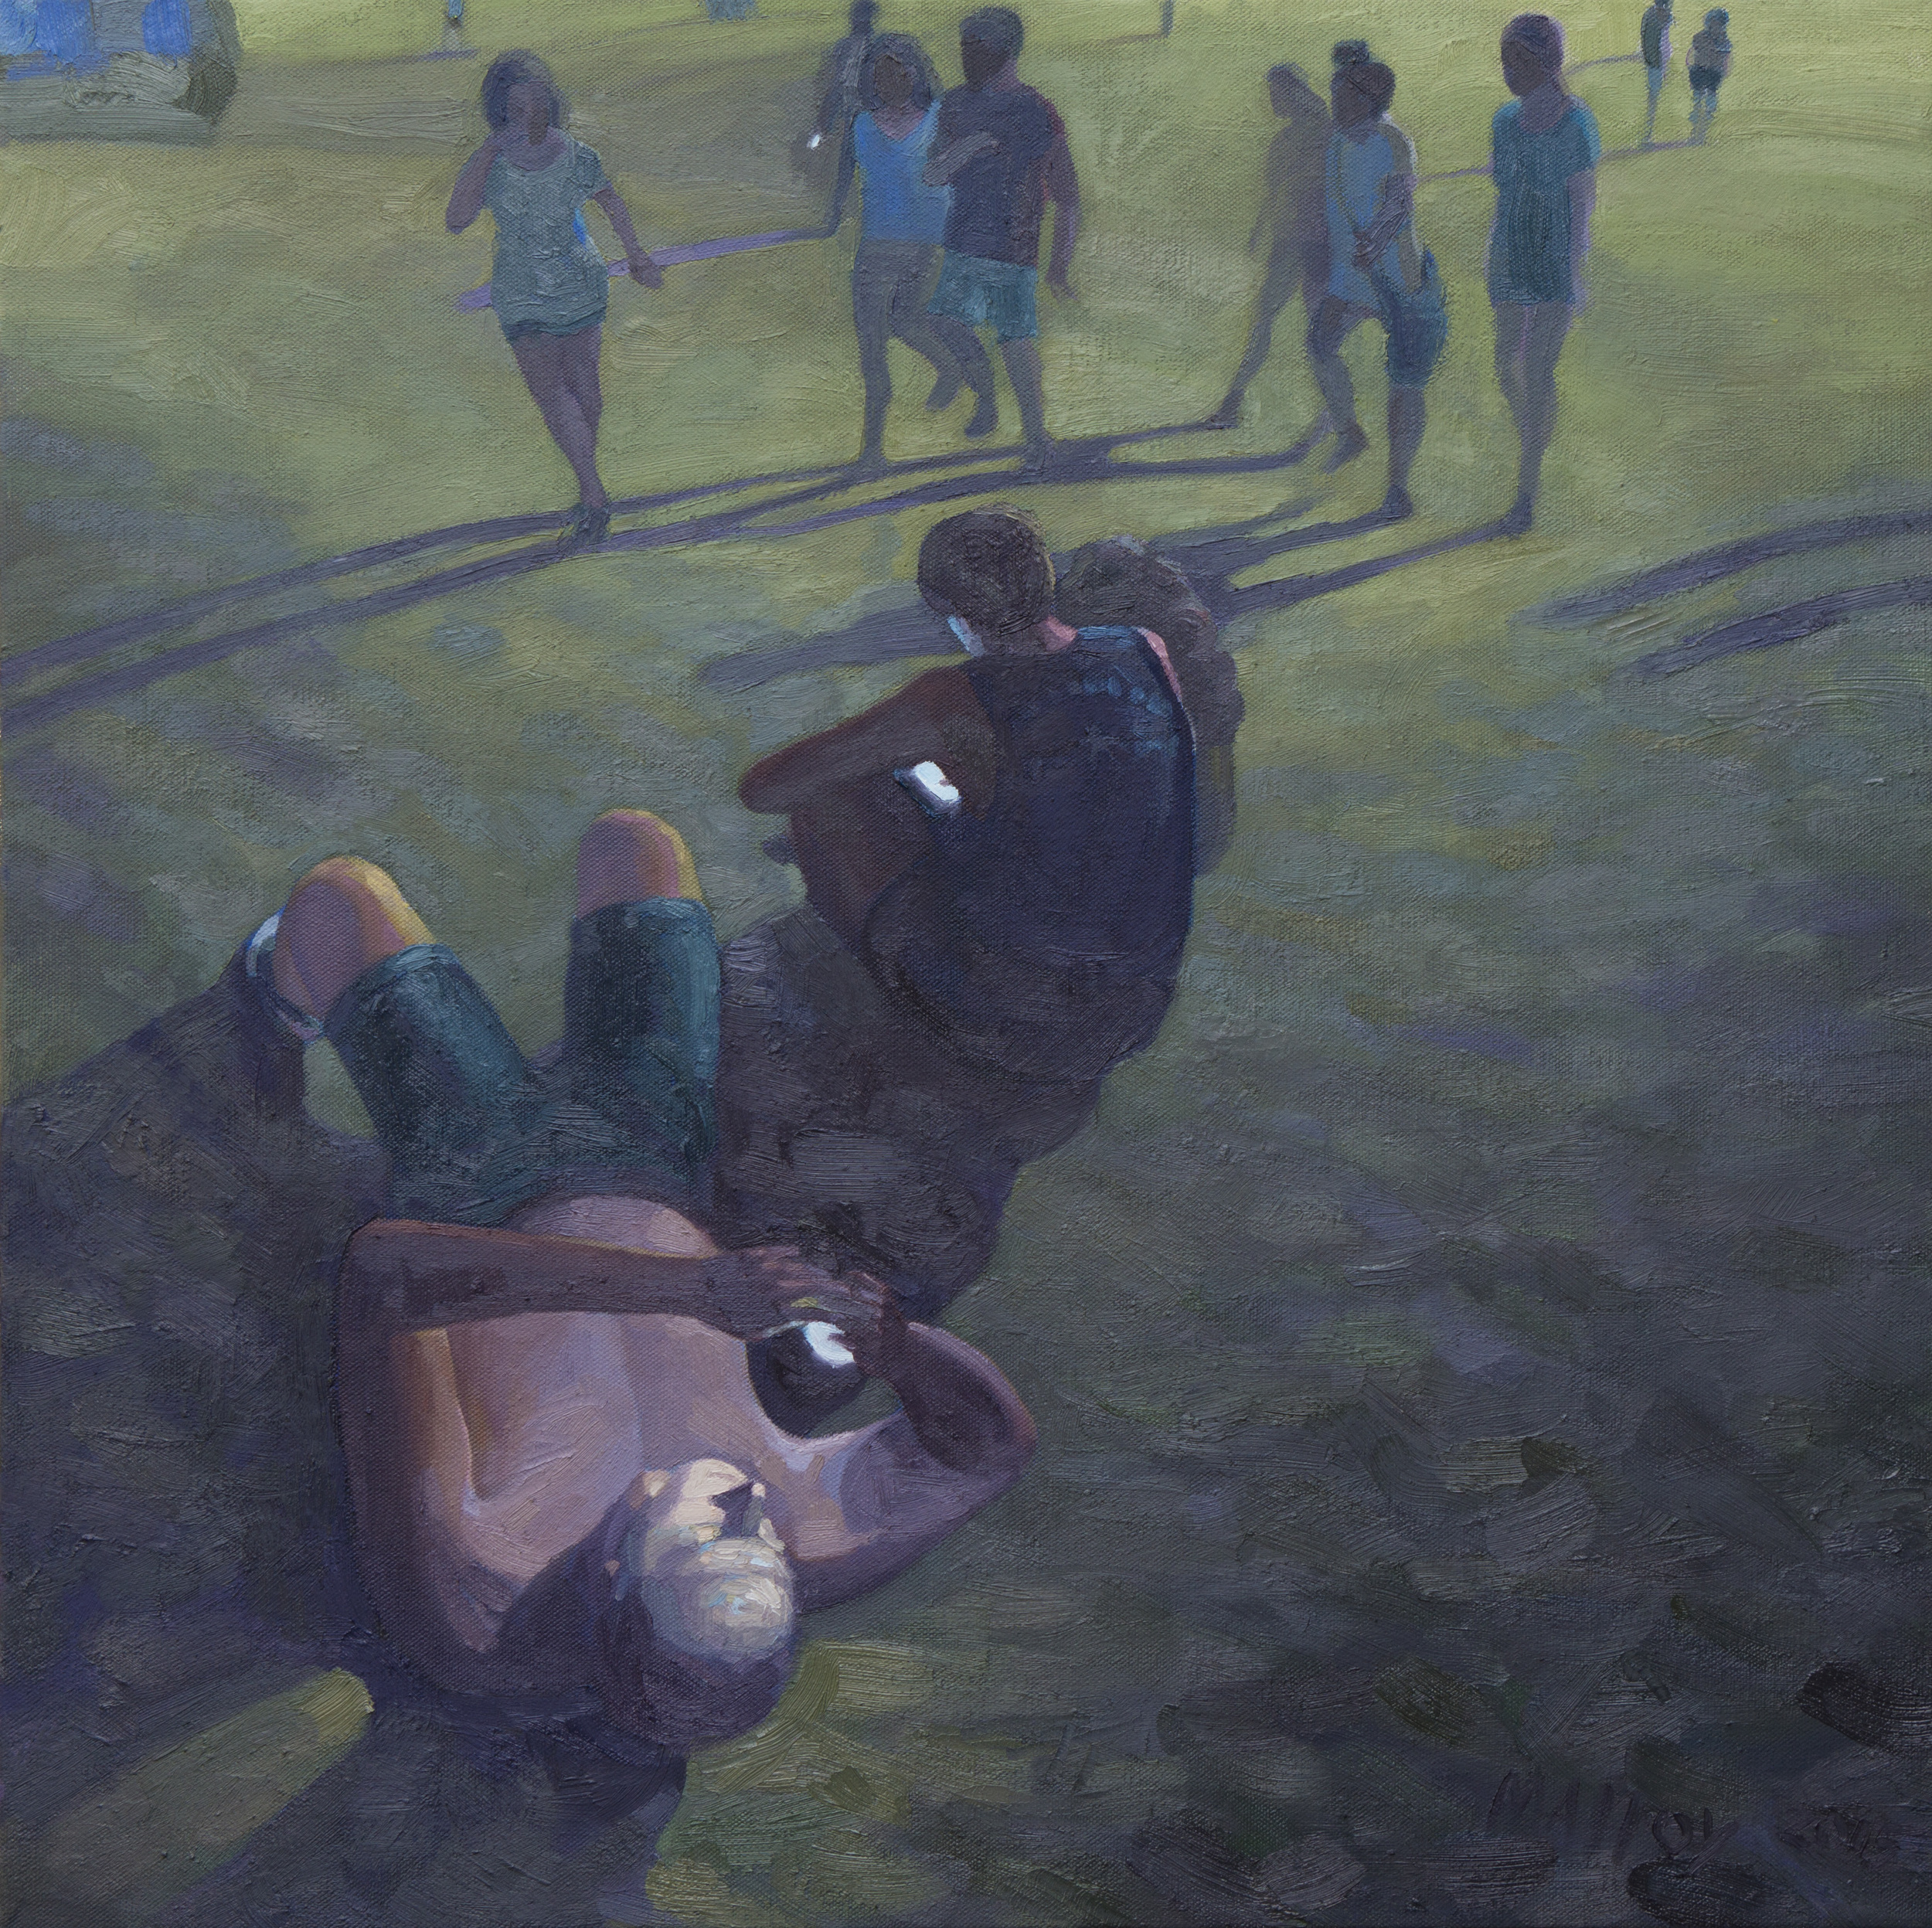 """Phubing at ACL 2.  Oil on canvas. 24"""" x 24"""". 2015"""